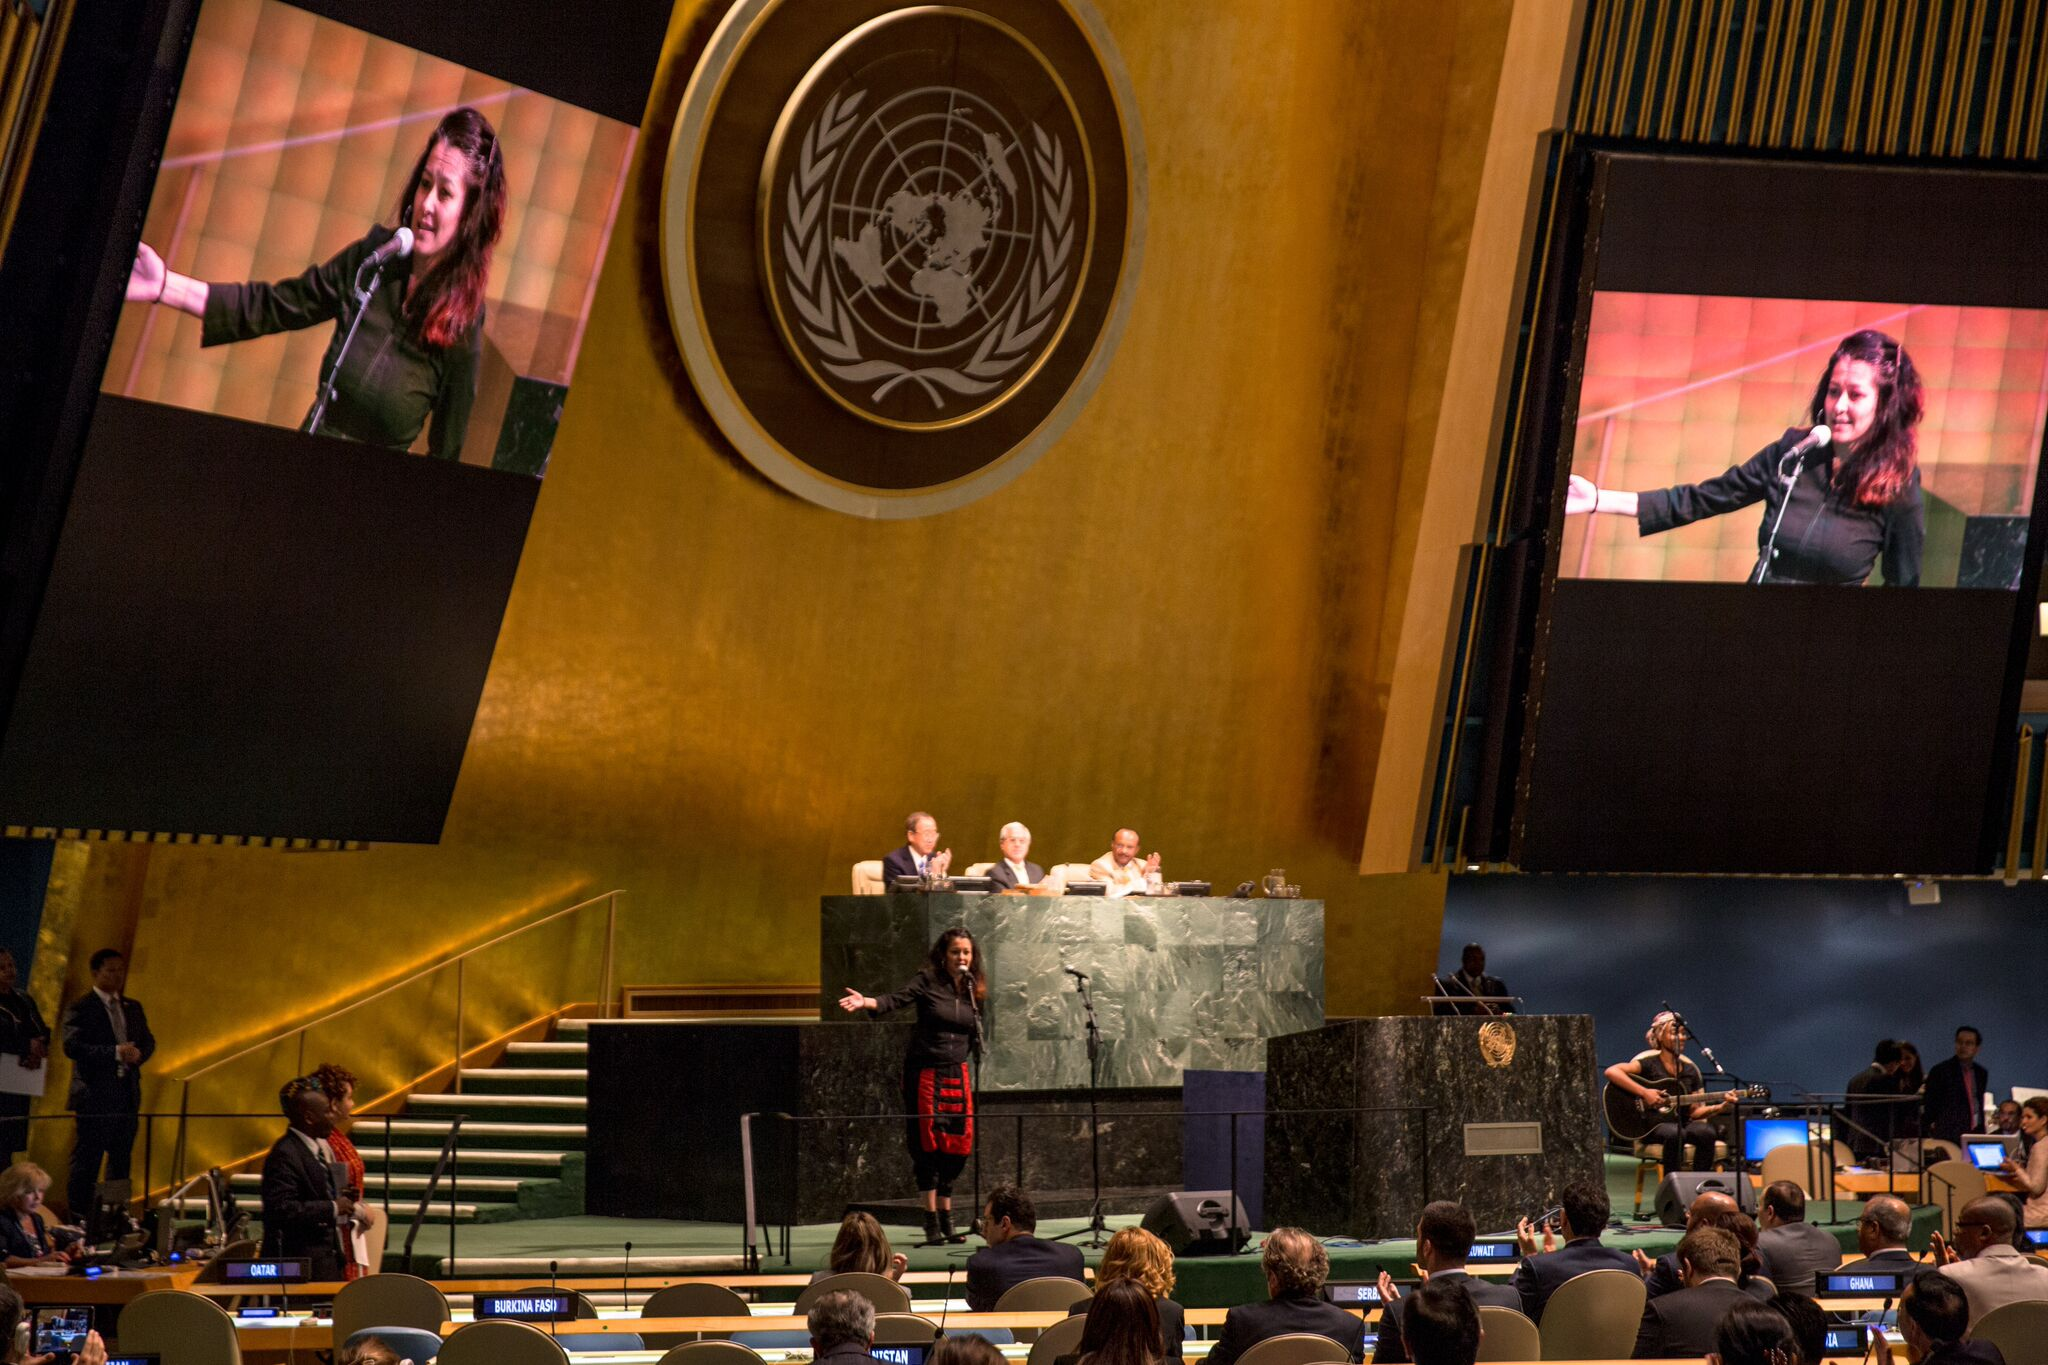 Emmy winning Filmmaker, Lisa Russell, Advocates for Artists at the UN